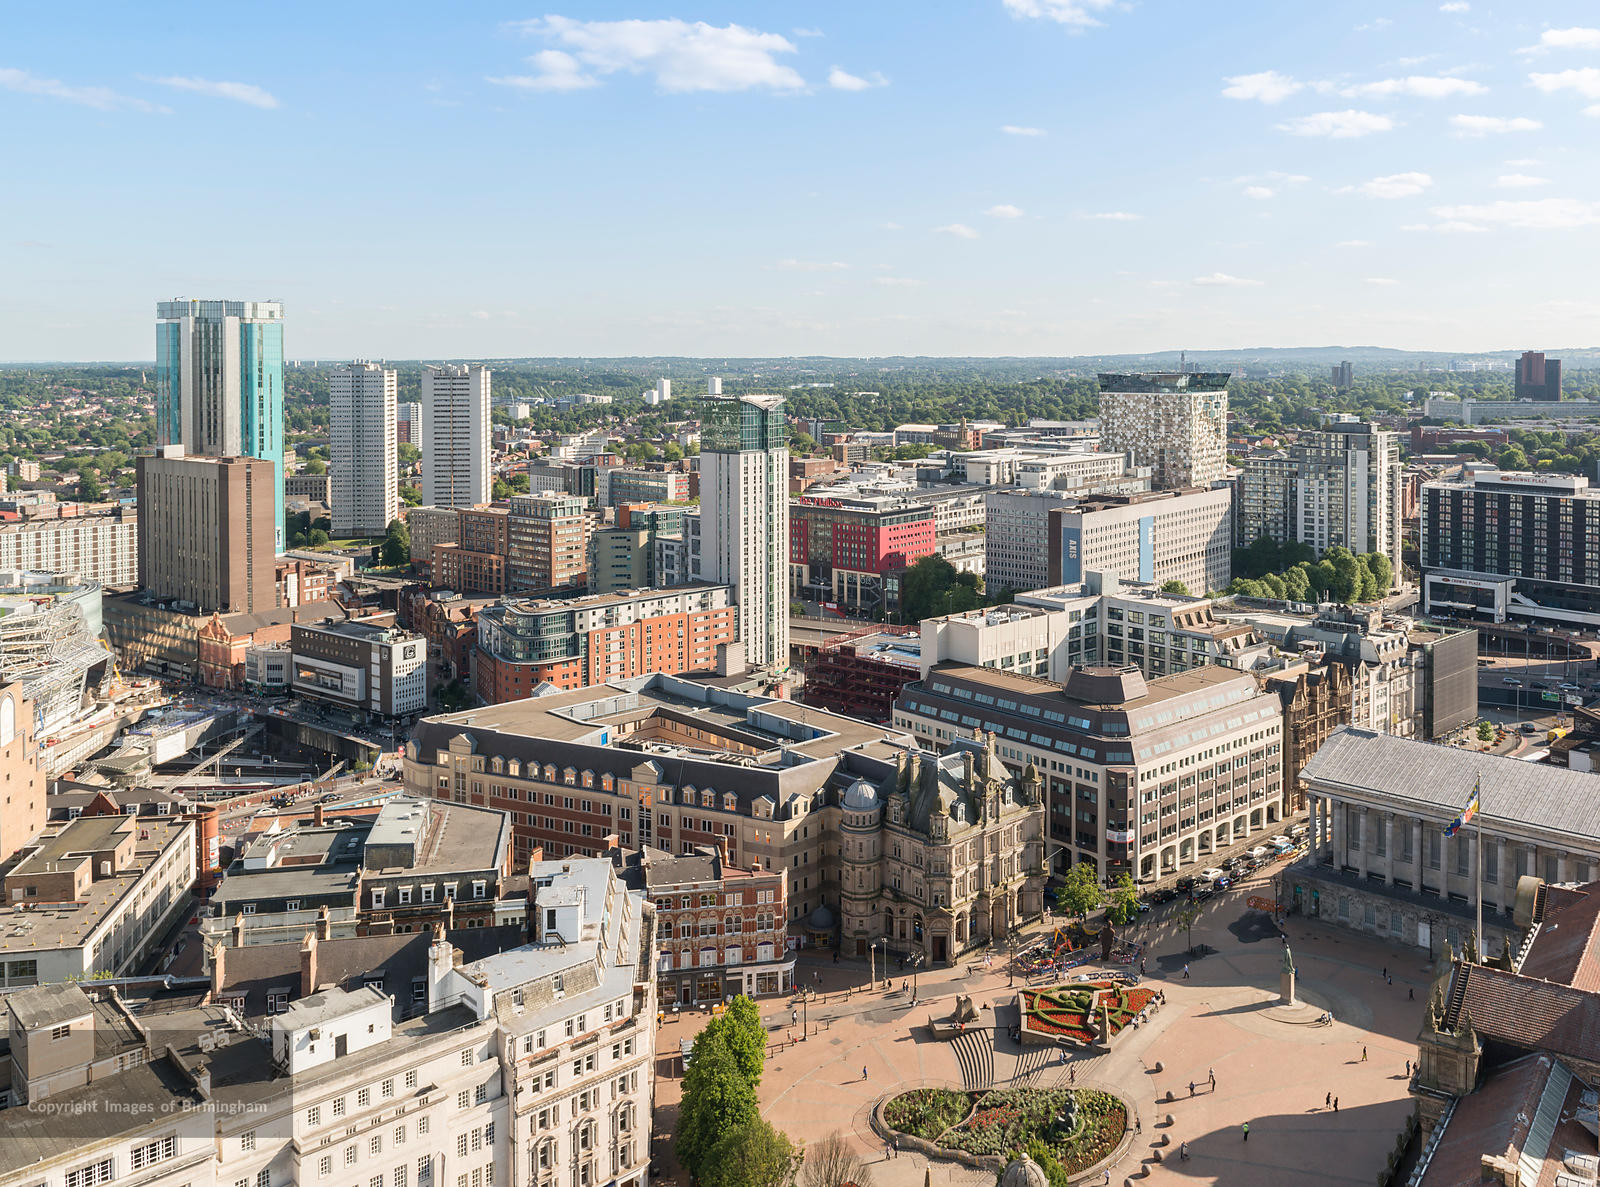 Victoria Square and a cityscape of Birmingham, England